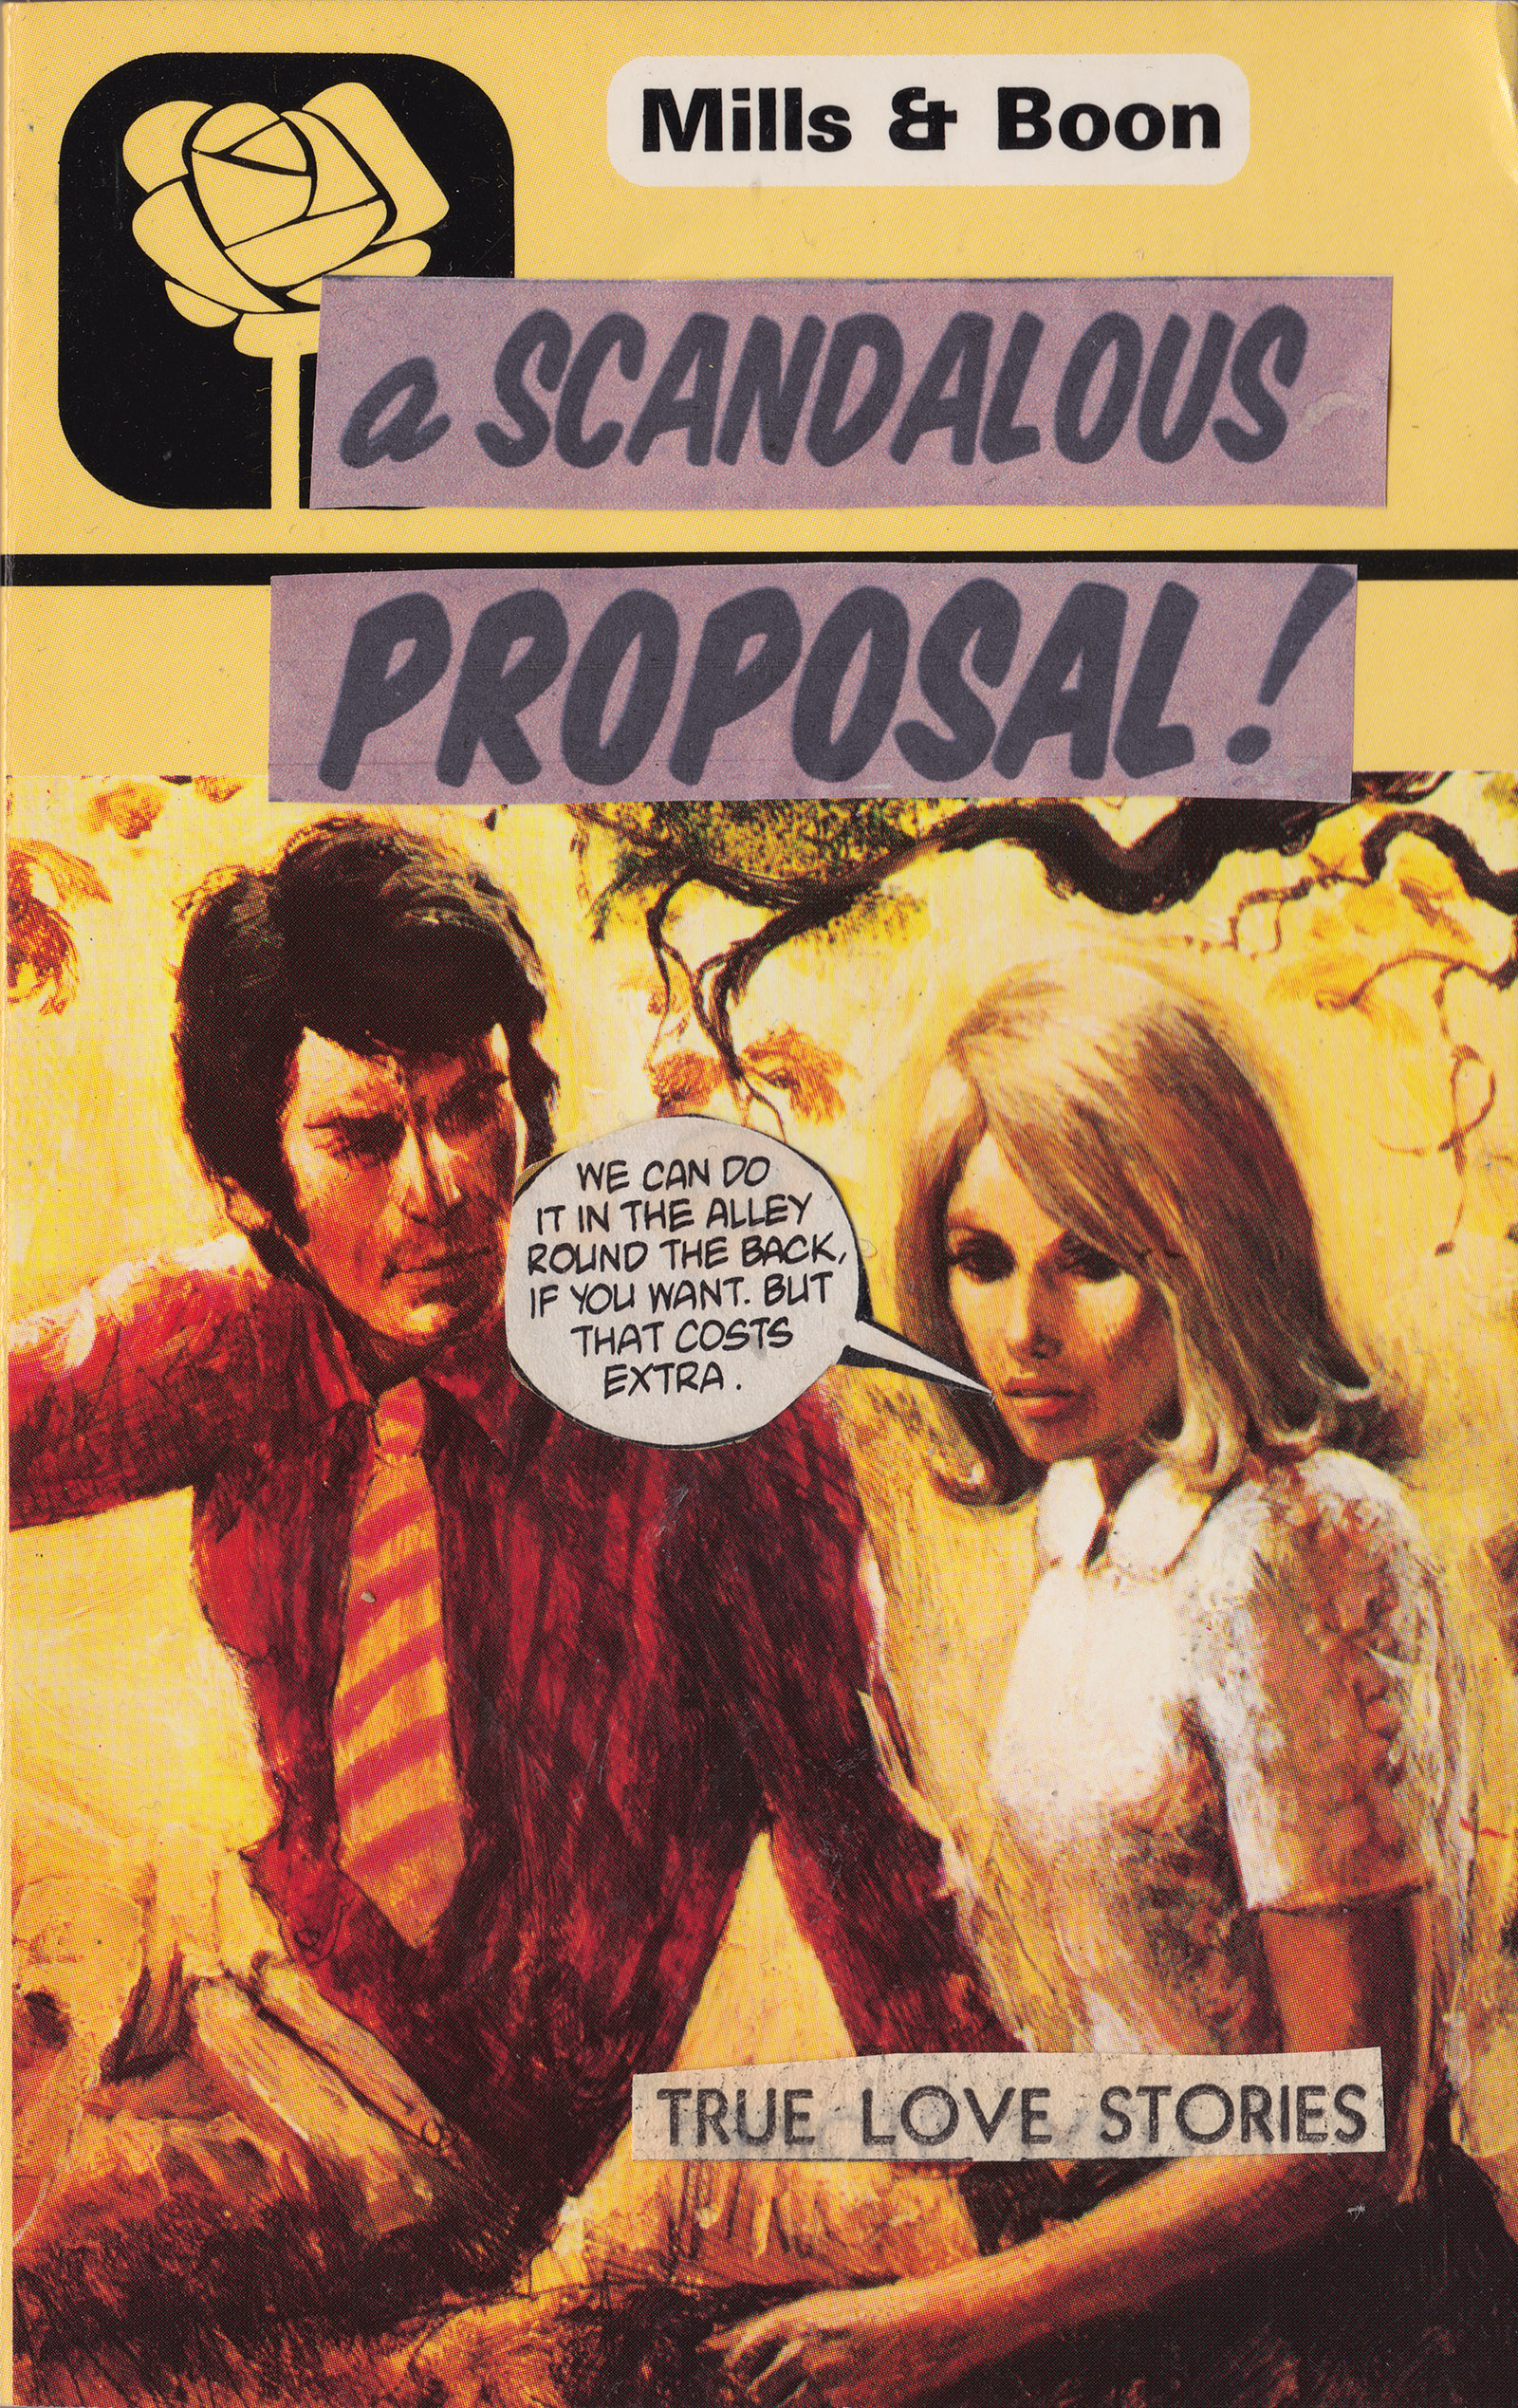 a scandalous proposal